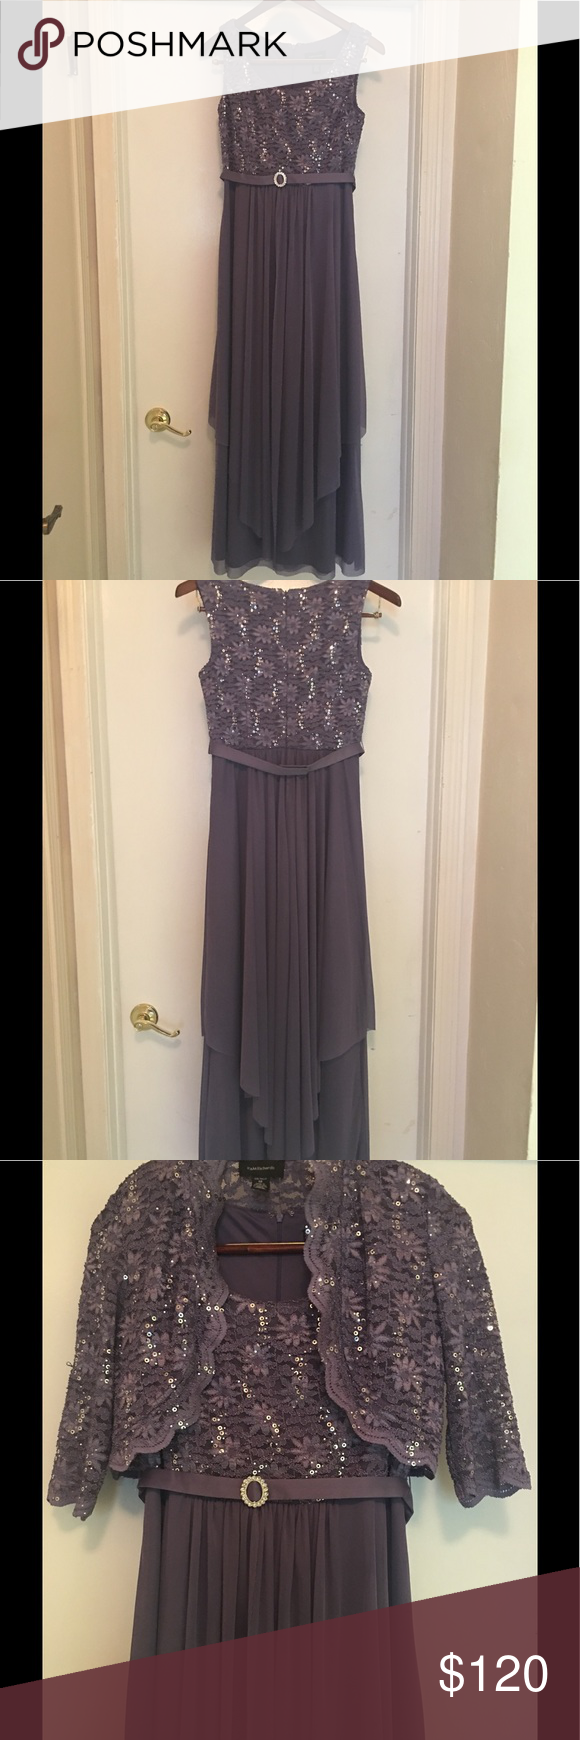 Long evening gown long evening gowns gowns and size